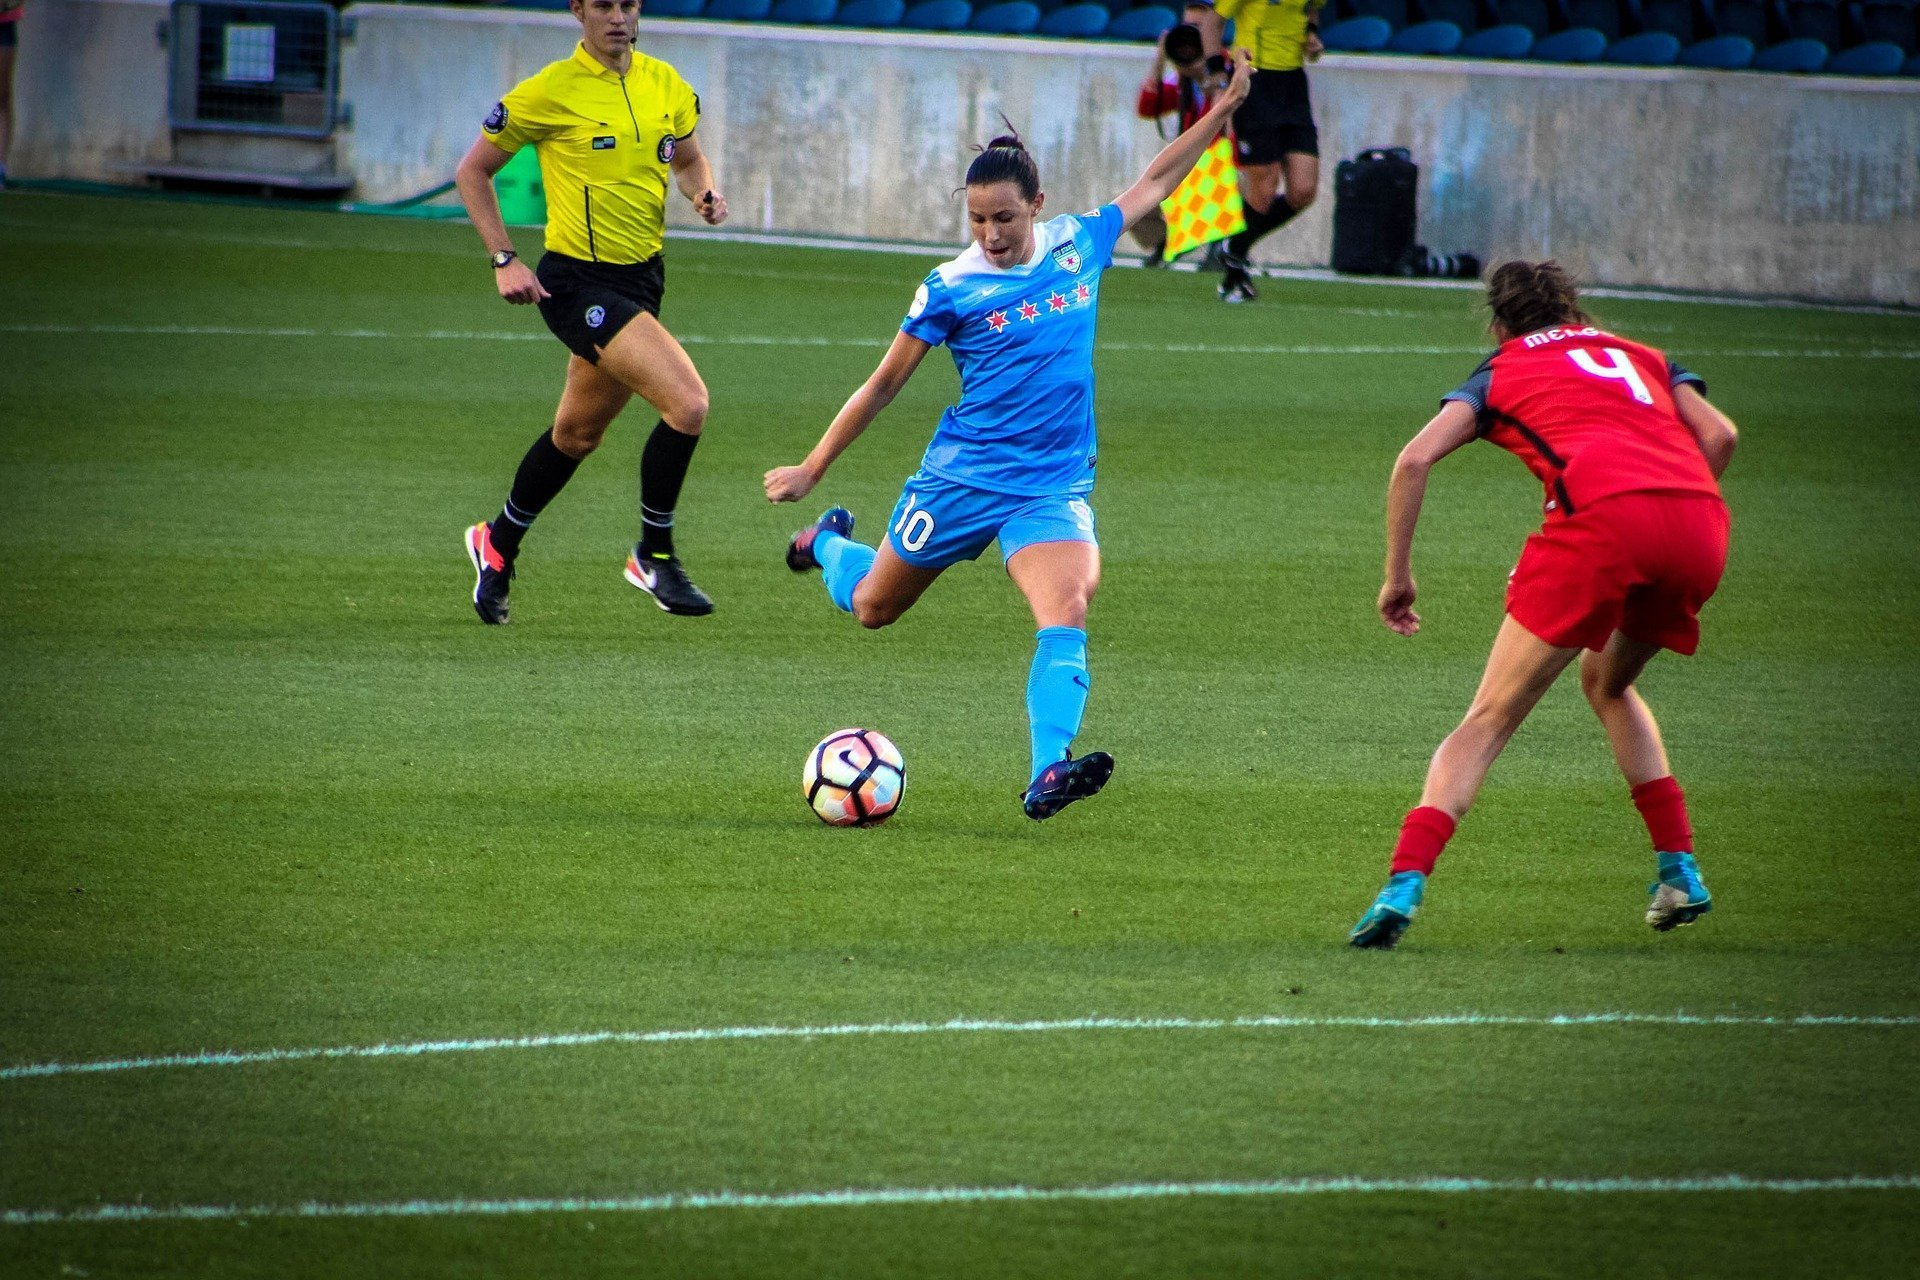 Photo of women's football match - the players are not named